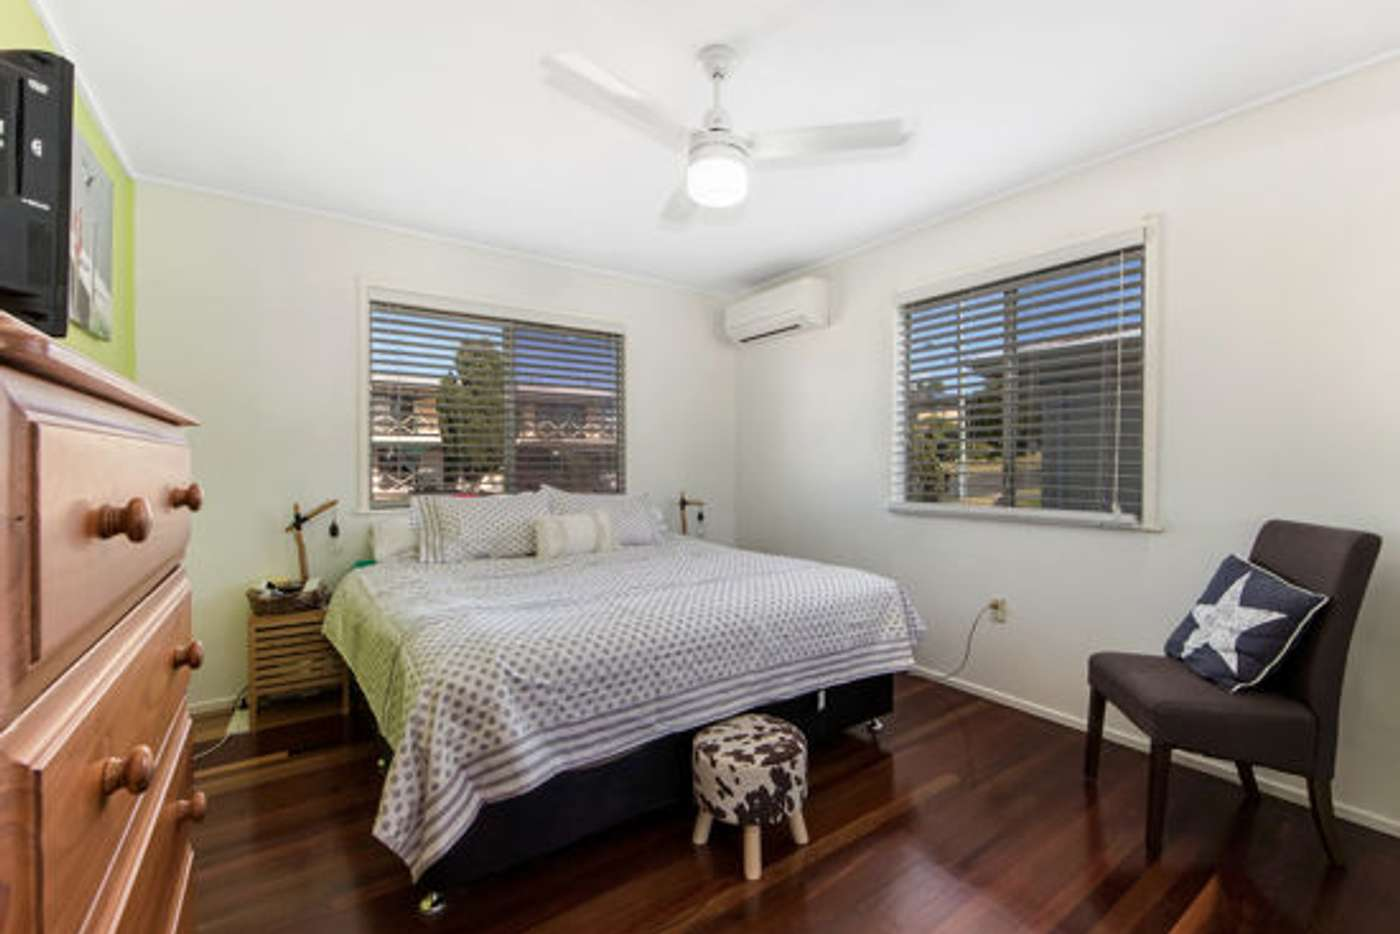 Seventh view of Homely house listing, 10 Loveanius Street, Silkstone QLD 4304